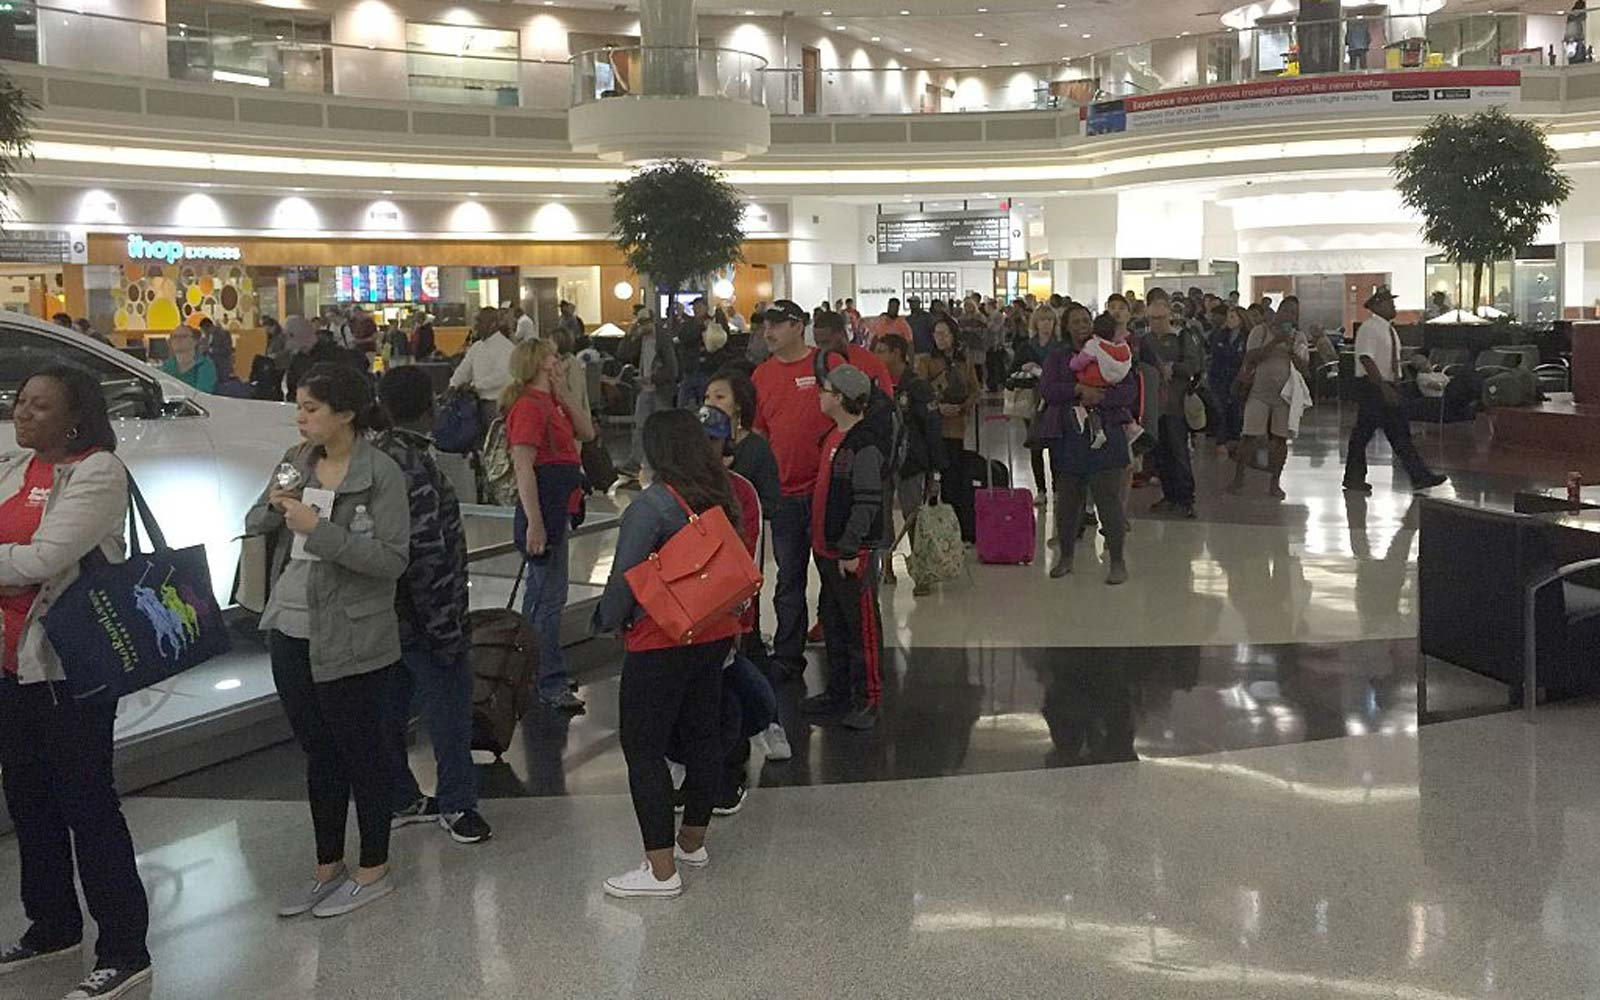 Atlanta's Airport, the World's Busiest, Has Closed 6 Security Lines Due to Government Shutdown